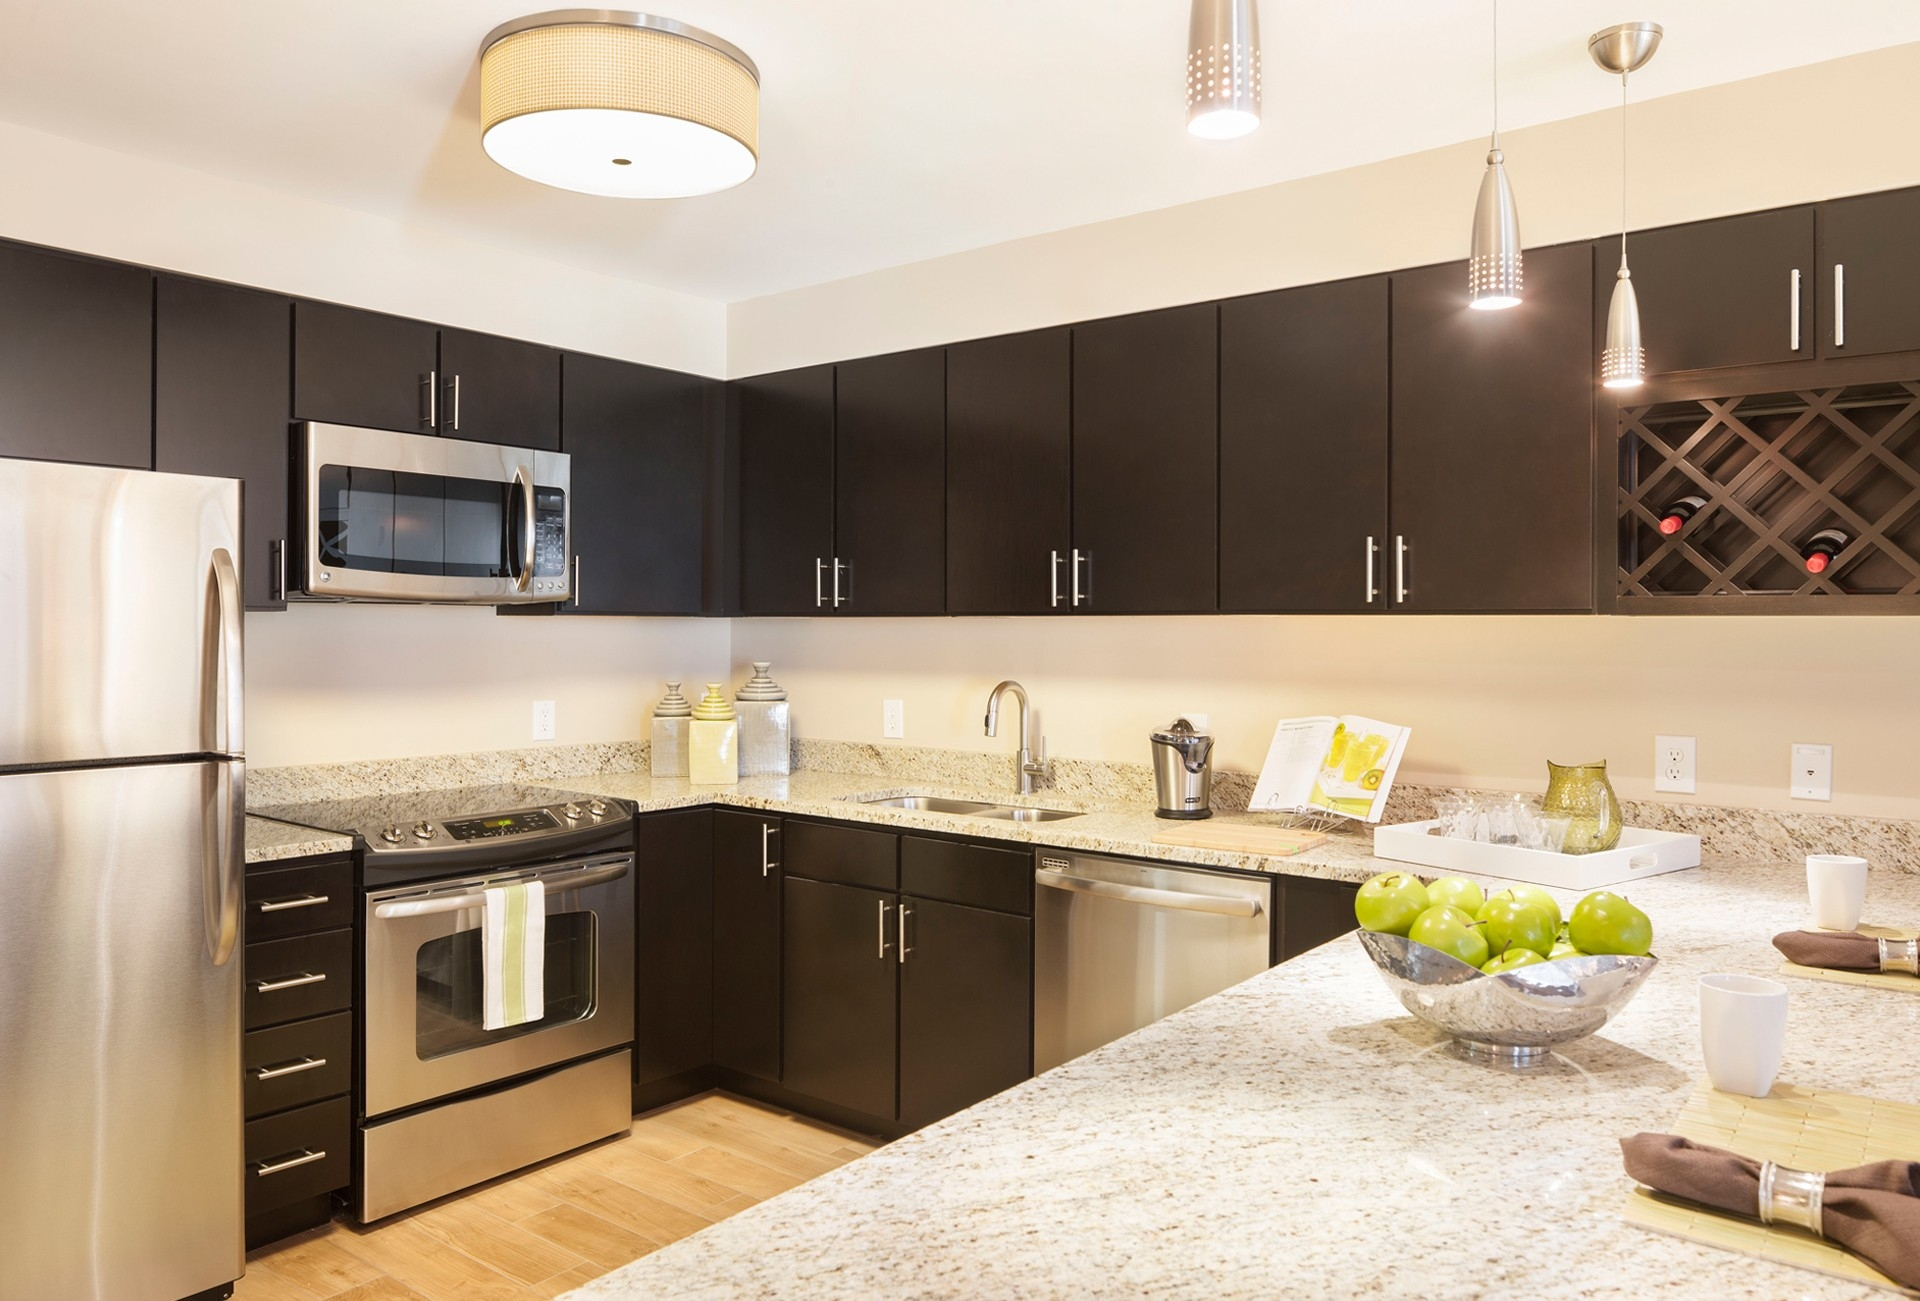 Durable Finish For Kitchen Cabinets